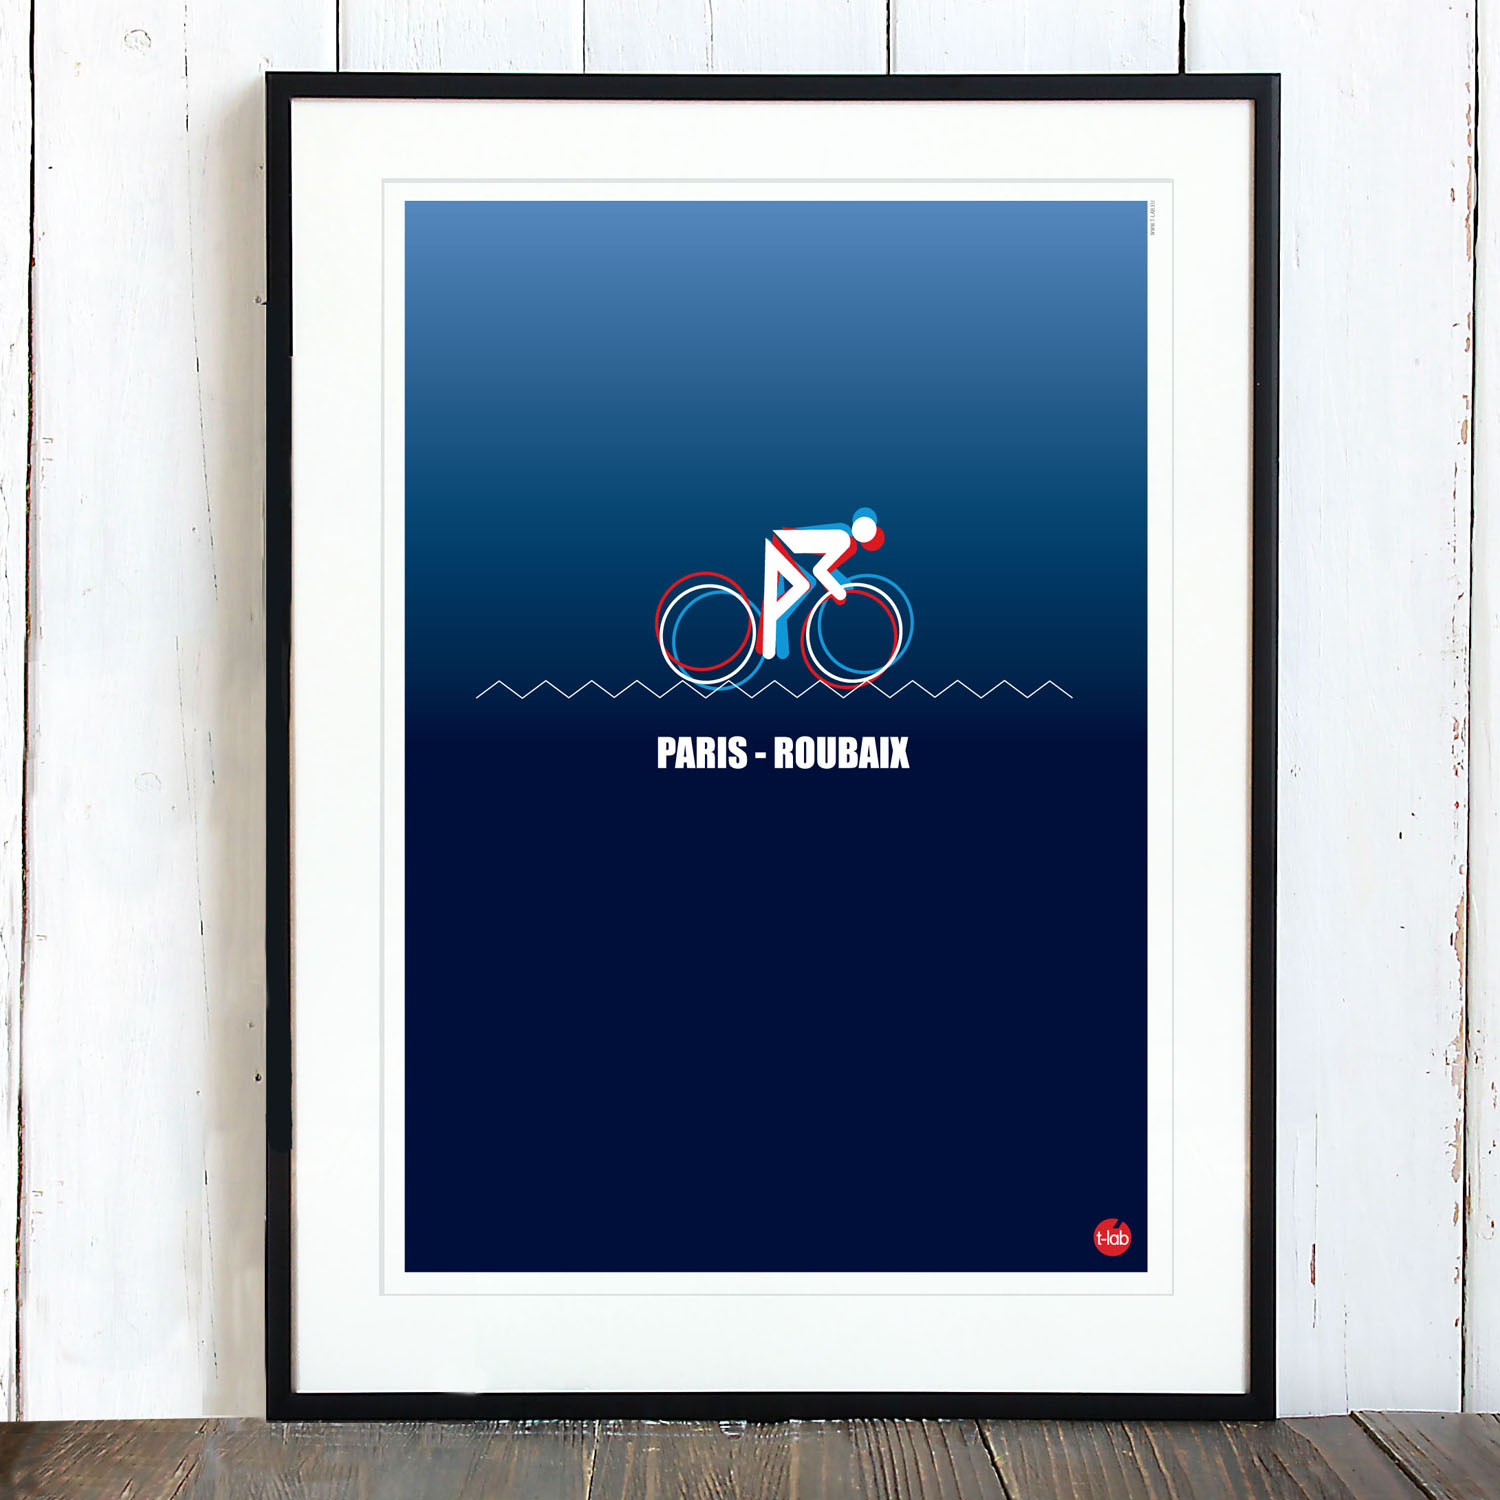 T-lab-Paris-Roubaix-A3-cycling-poster-framed